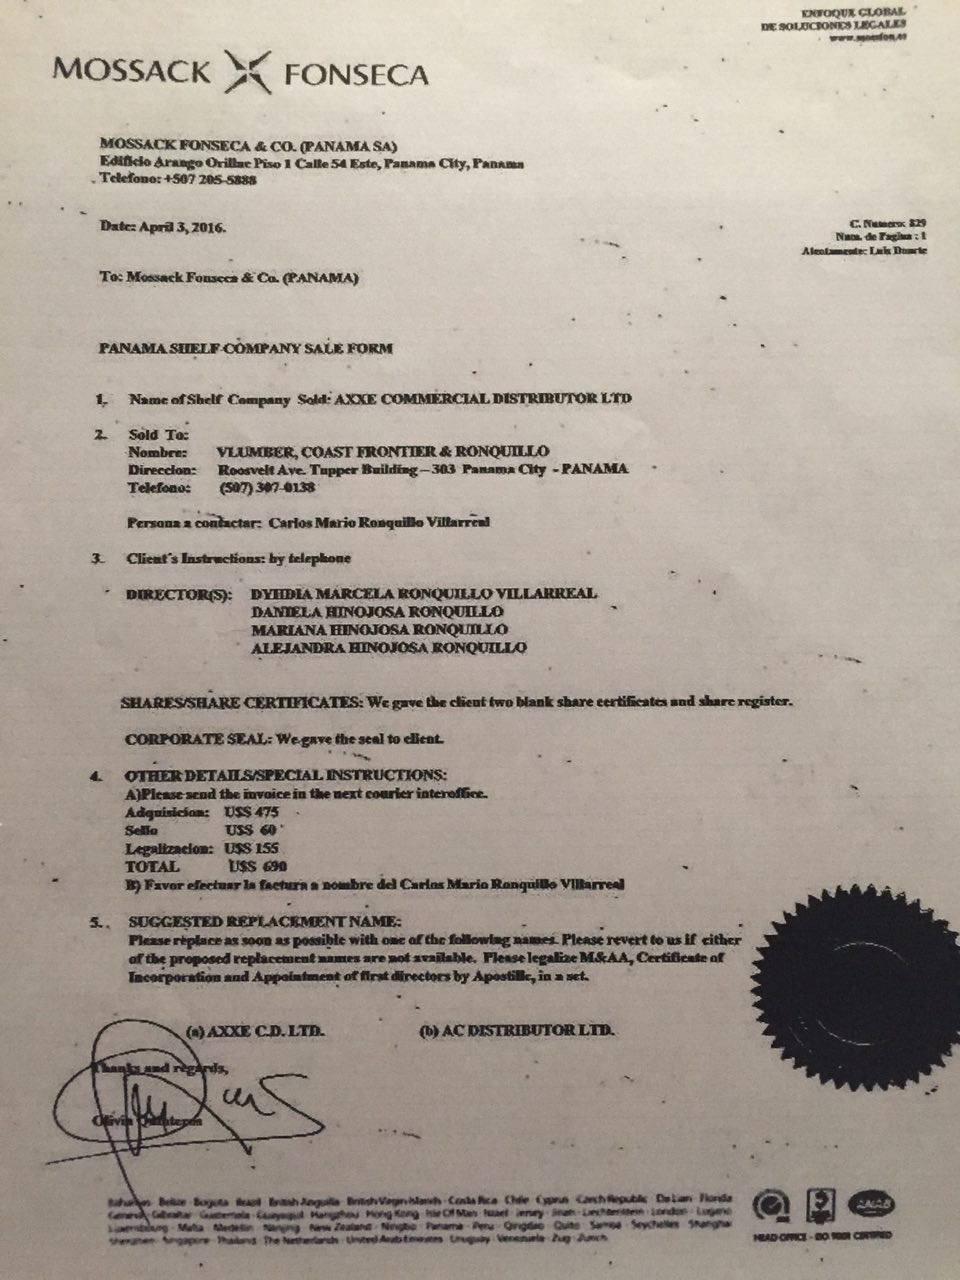 Baltazar Document Mossak Fonseca